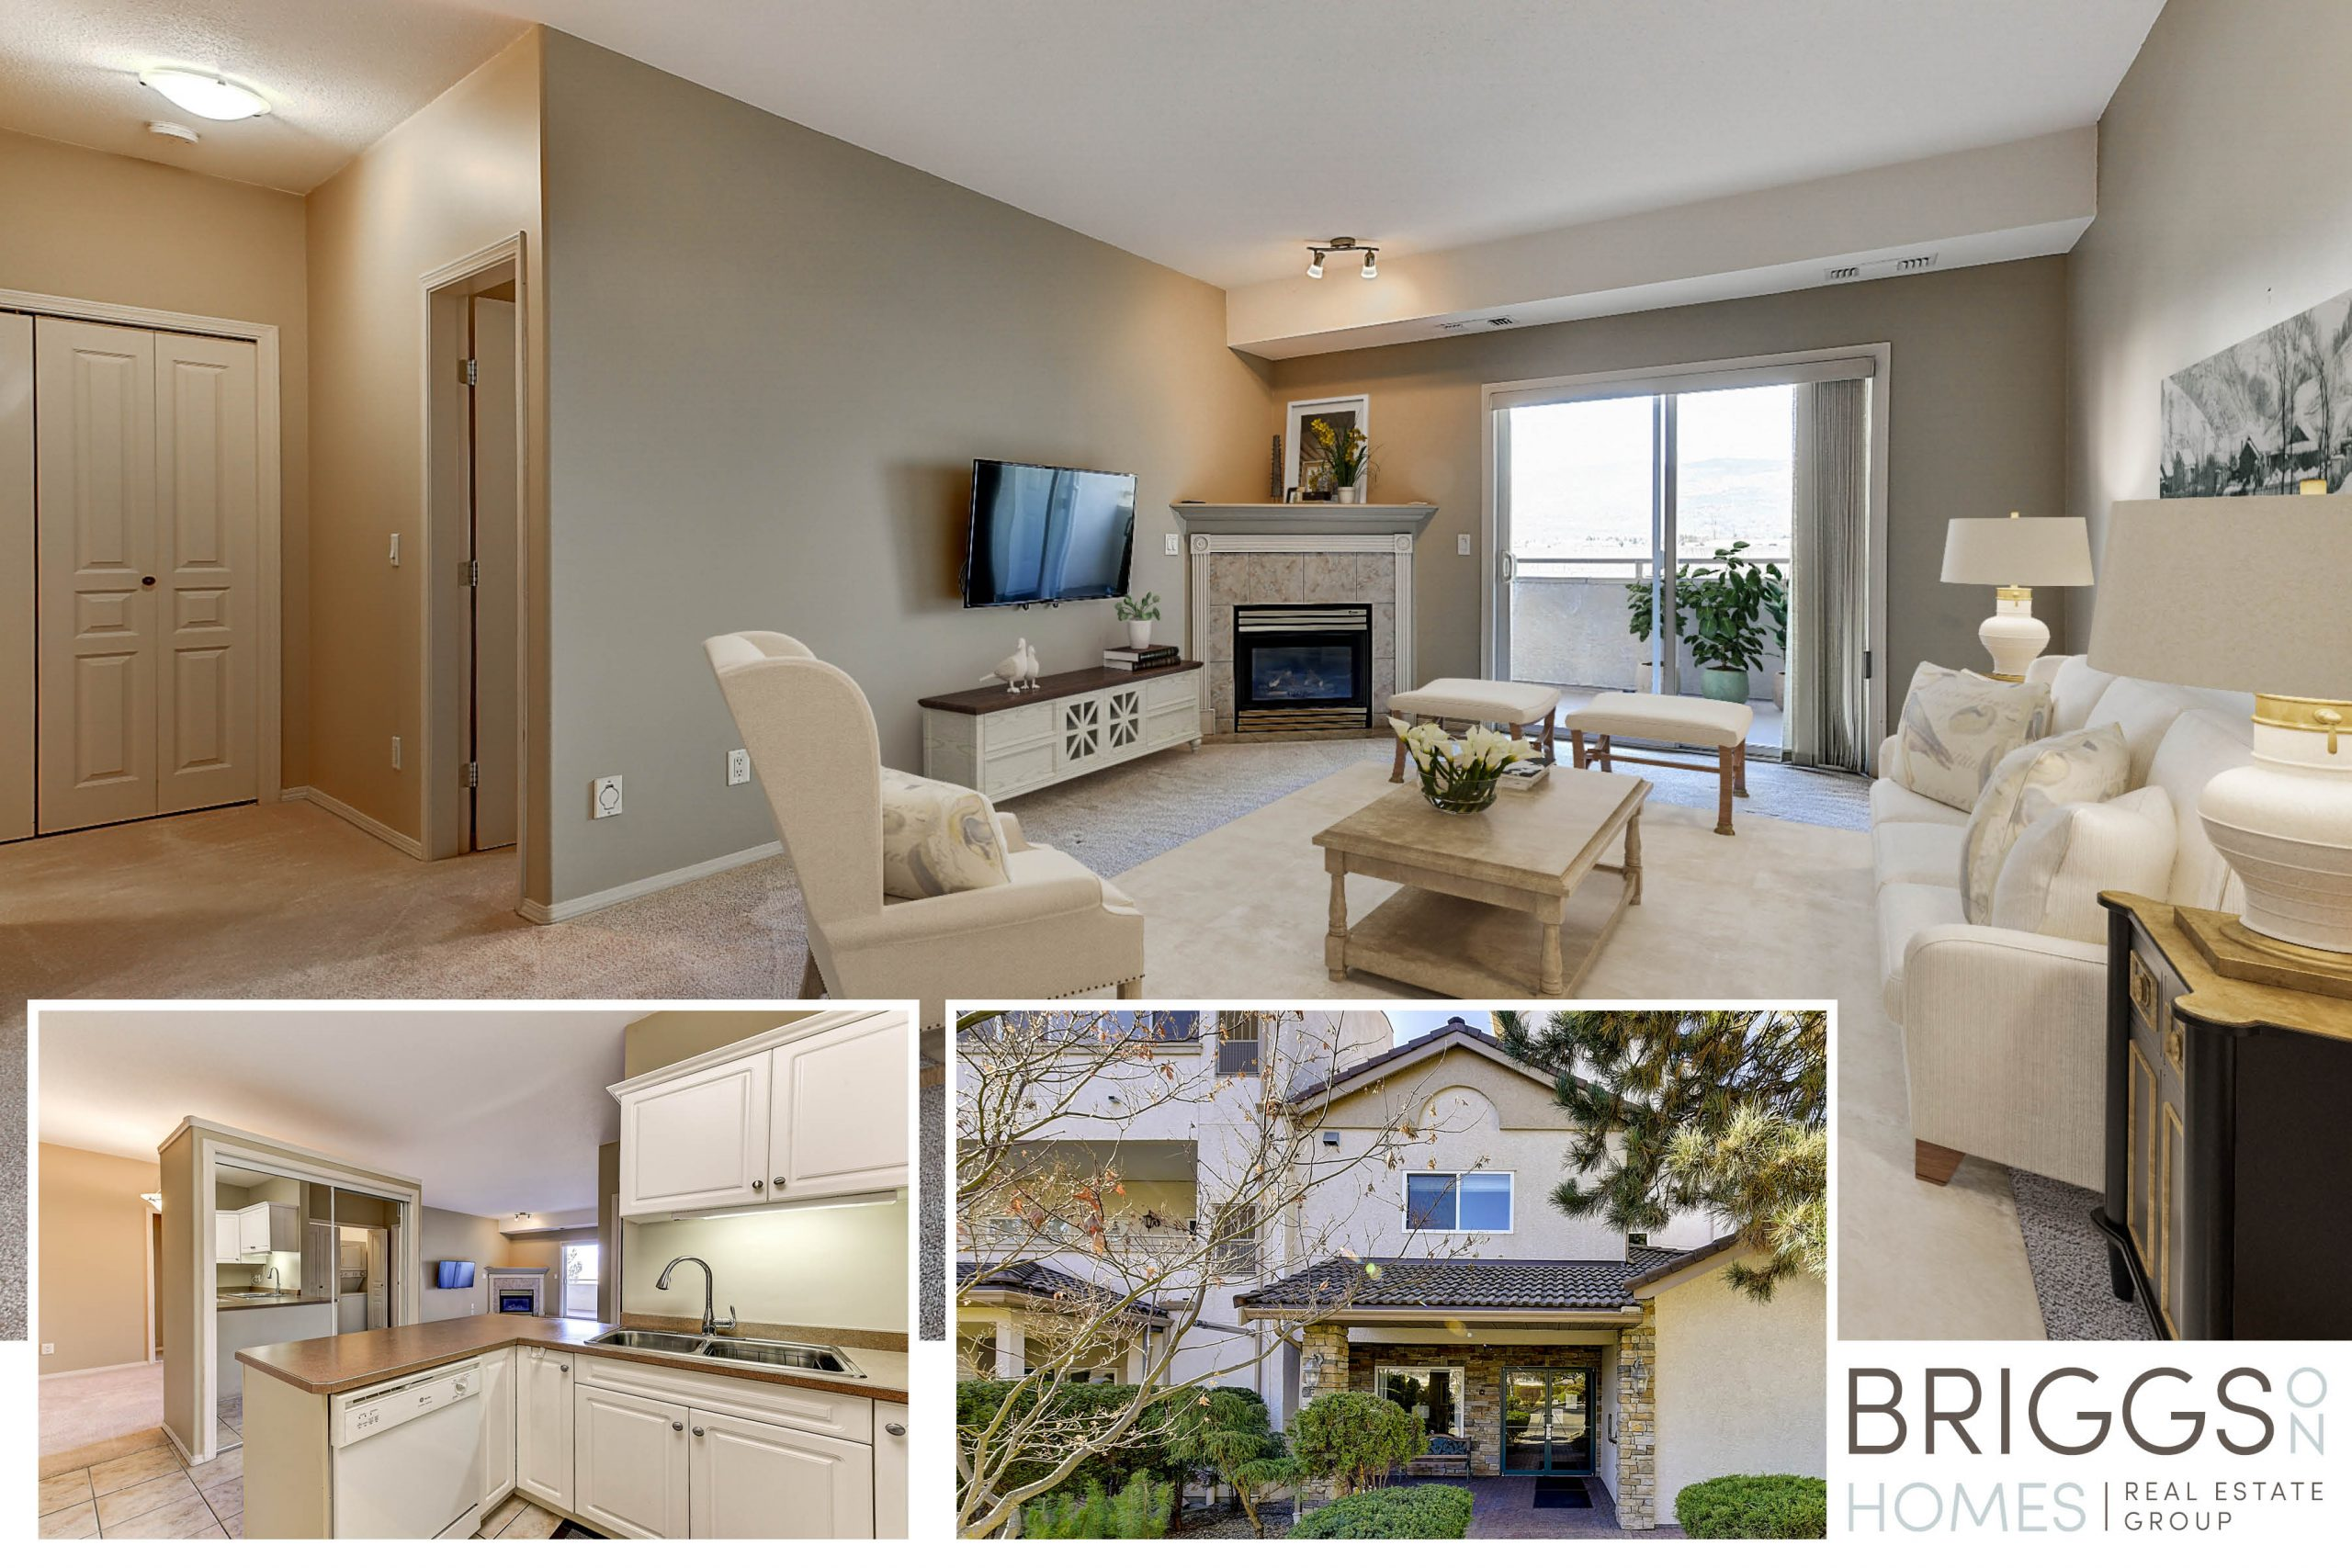 Just Sold! Lovely condo at Arboretum